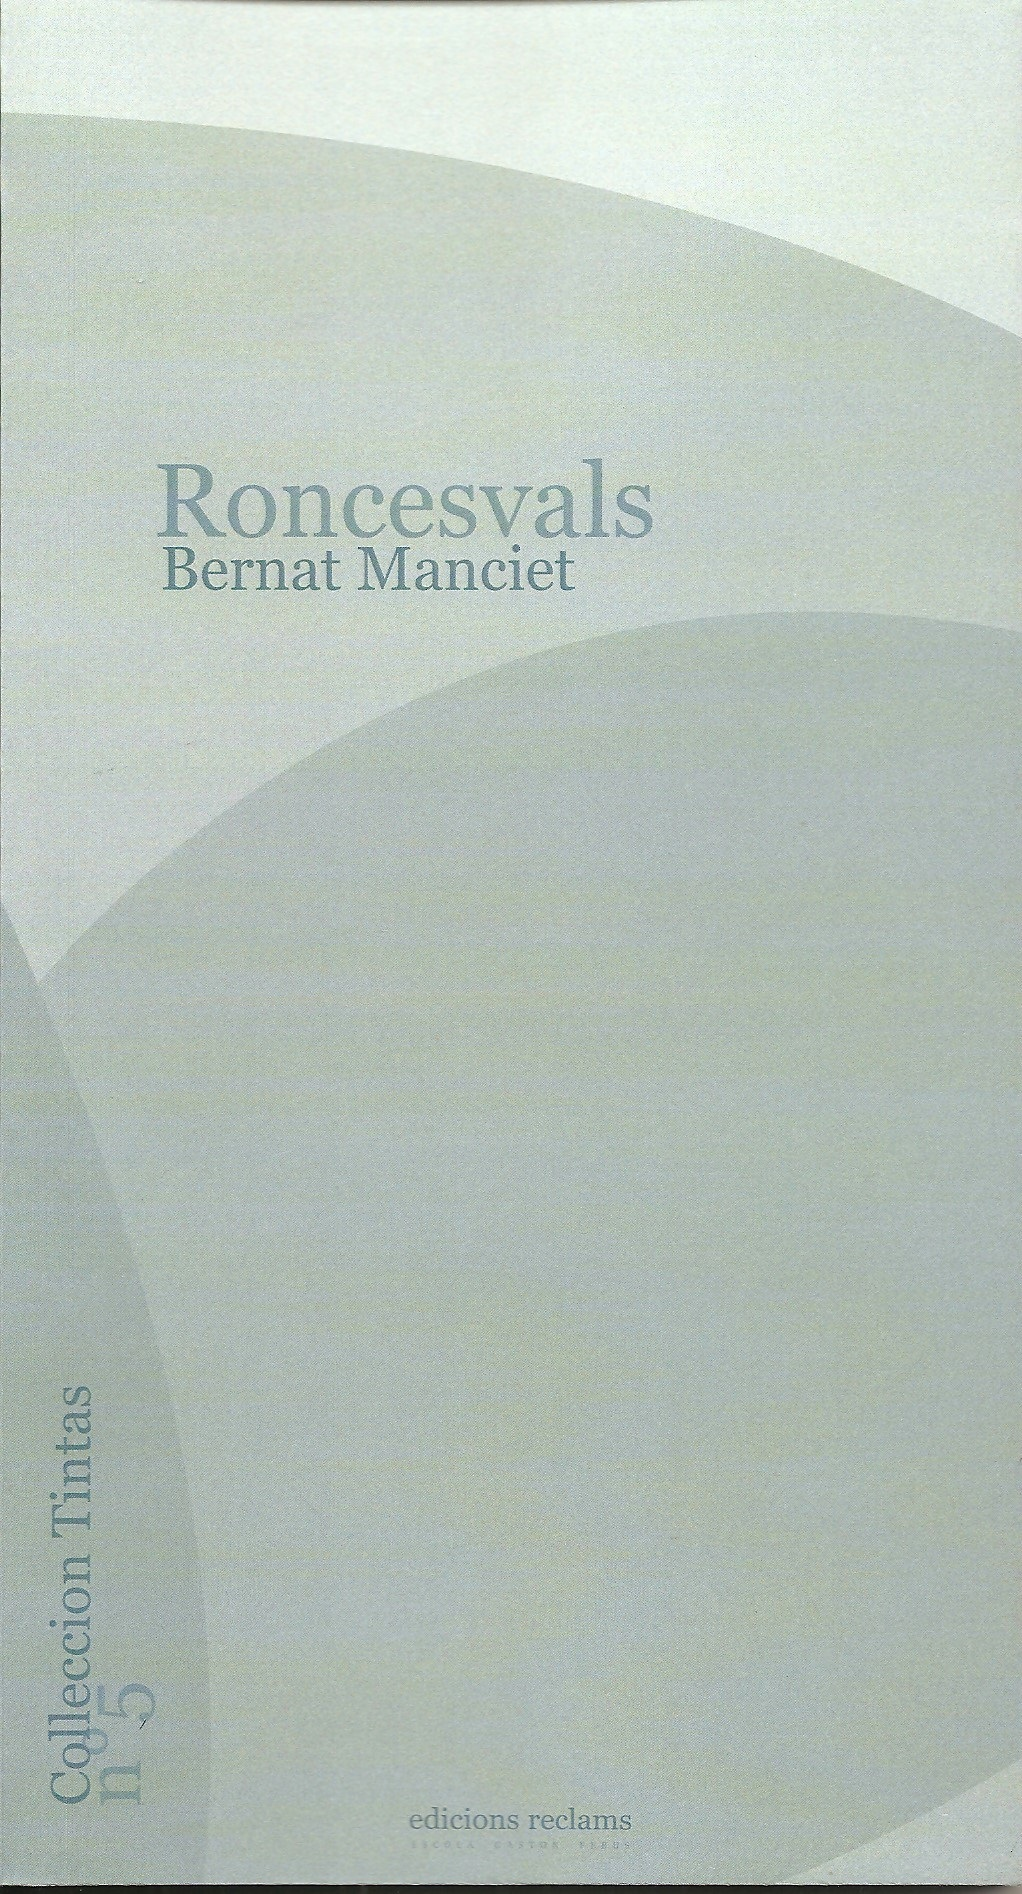 Roncesvals recto